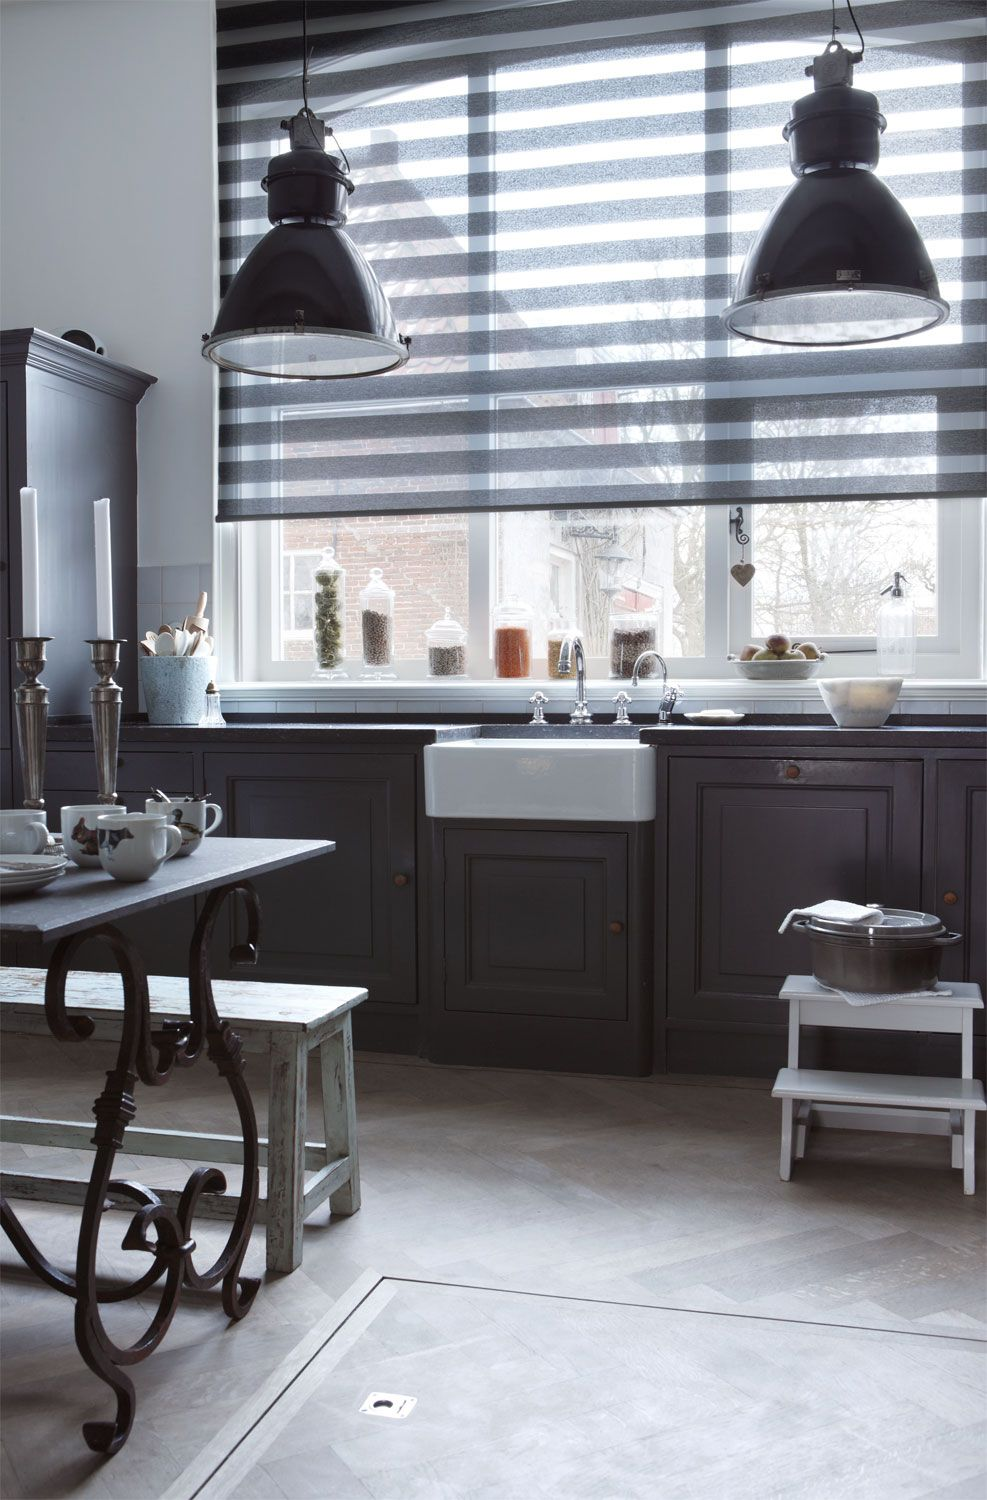 roller shades look great and gently filter the light in a room